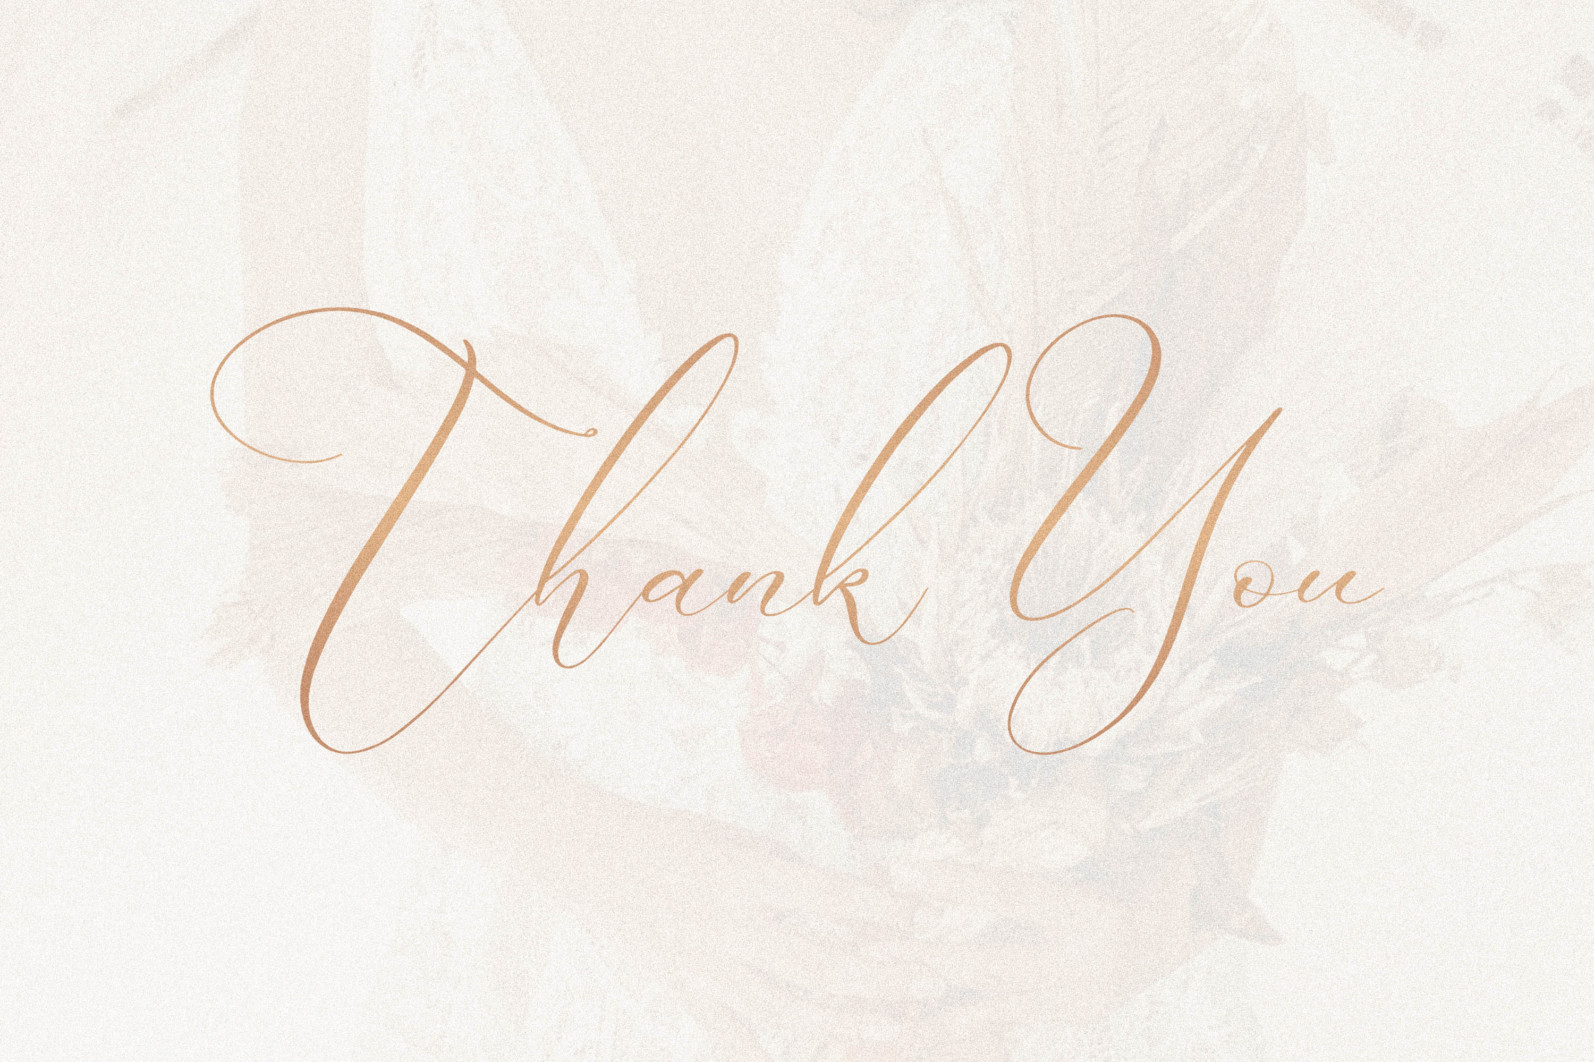 Boutique Qiara - Calligraphy Font - 13.png scaled -